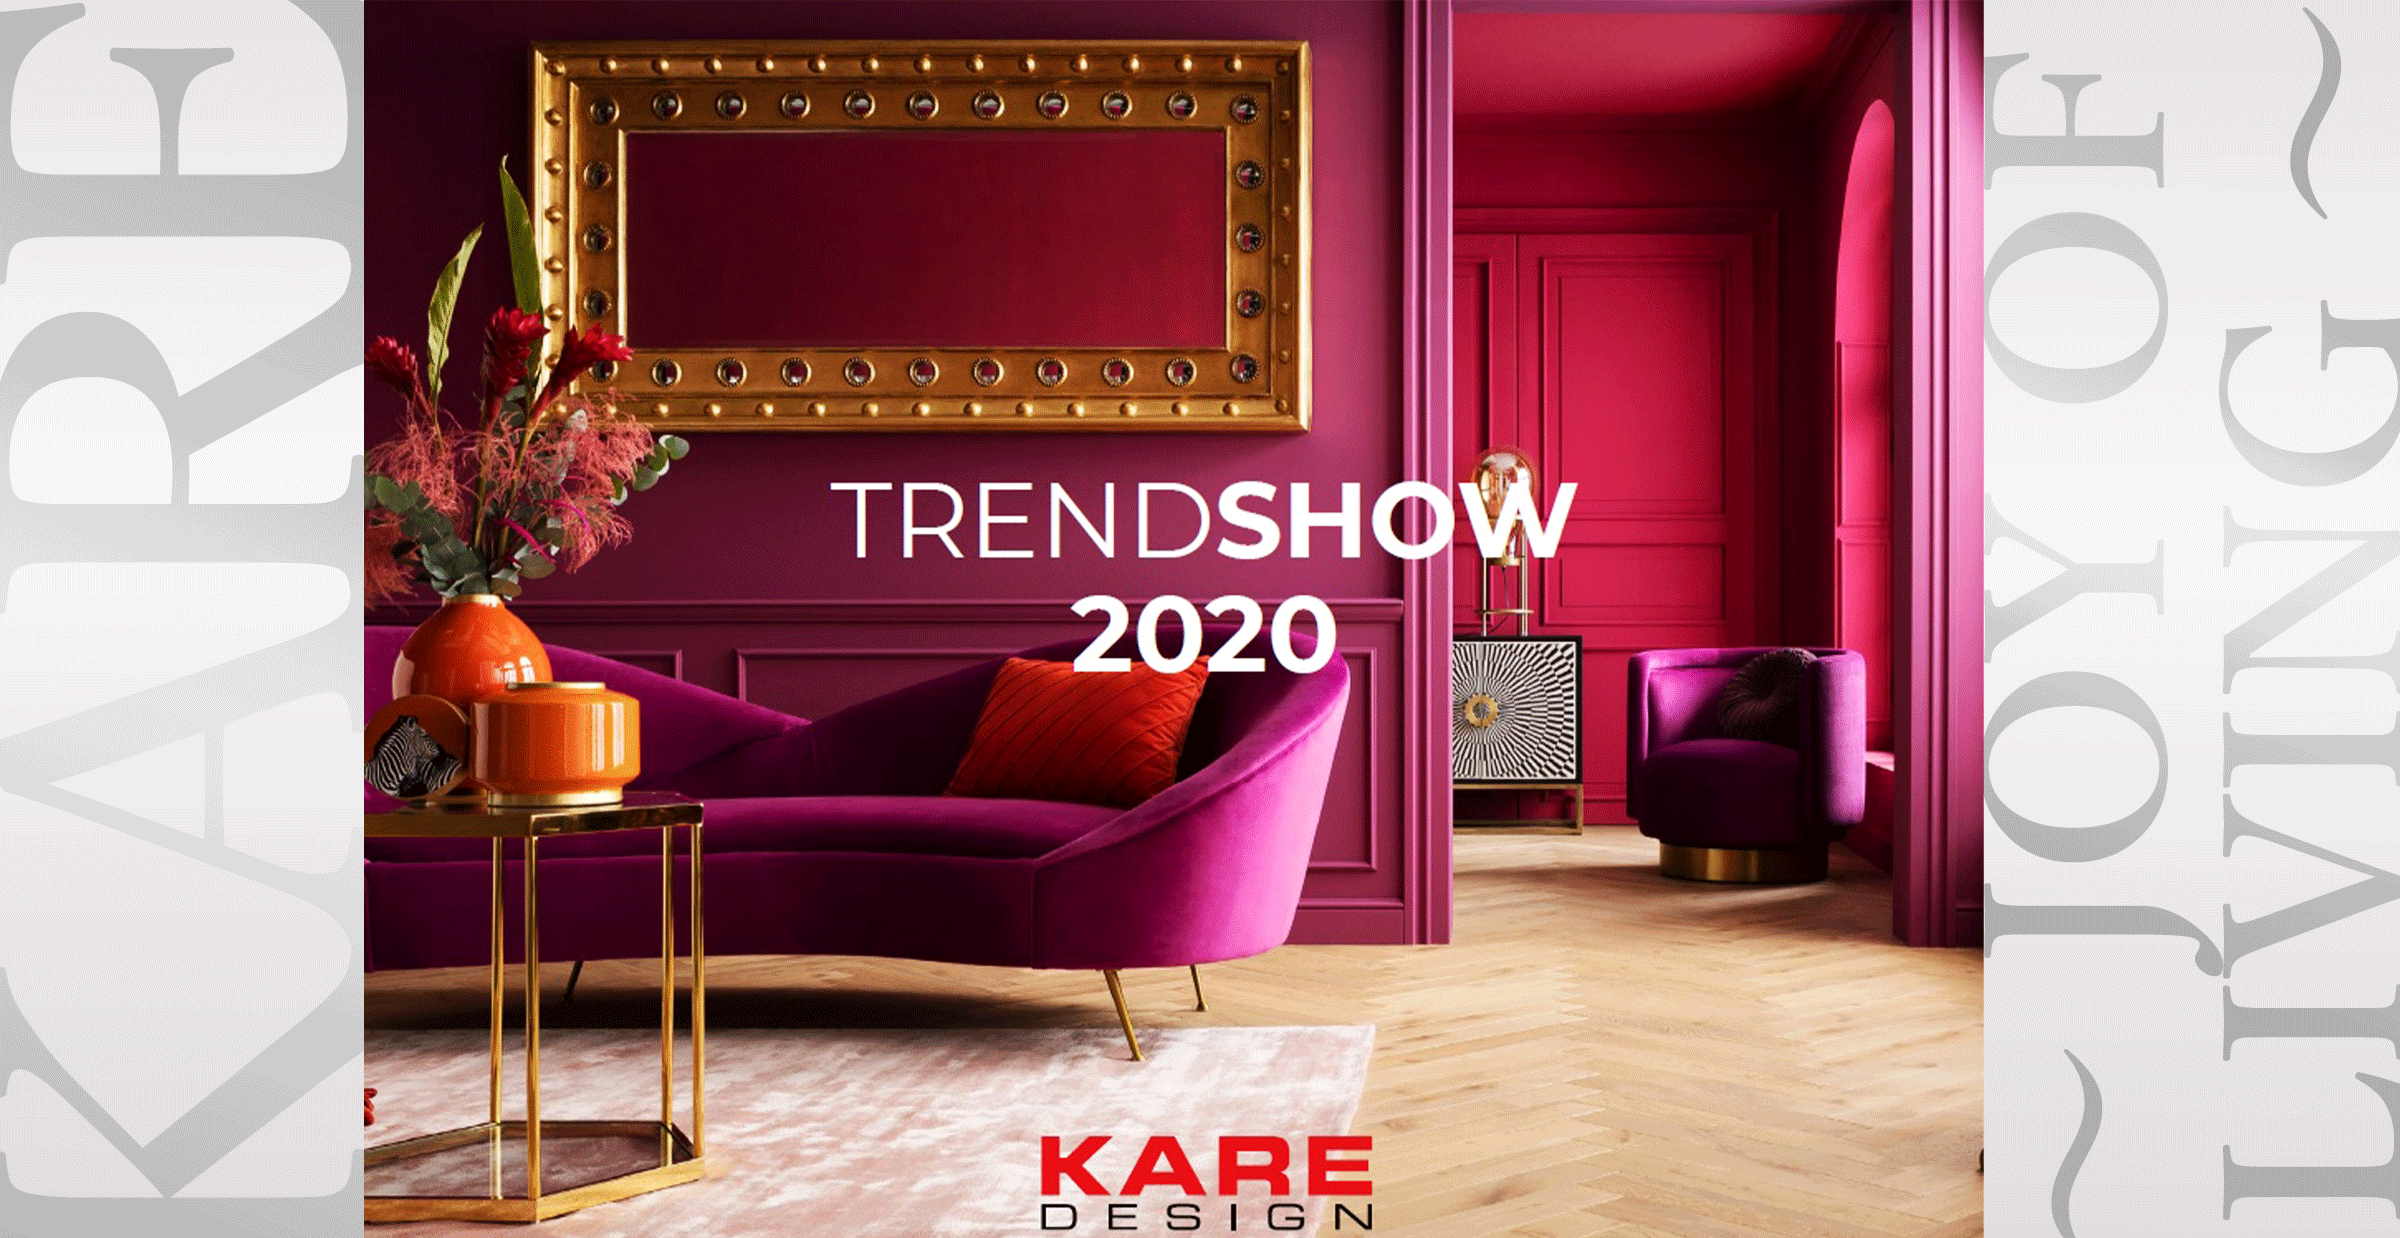 KARE TREND SHOW 2020